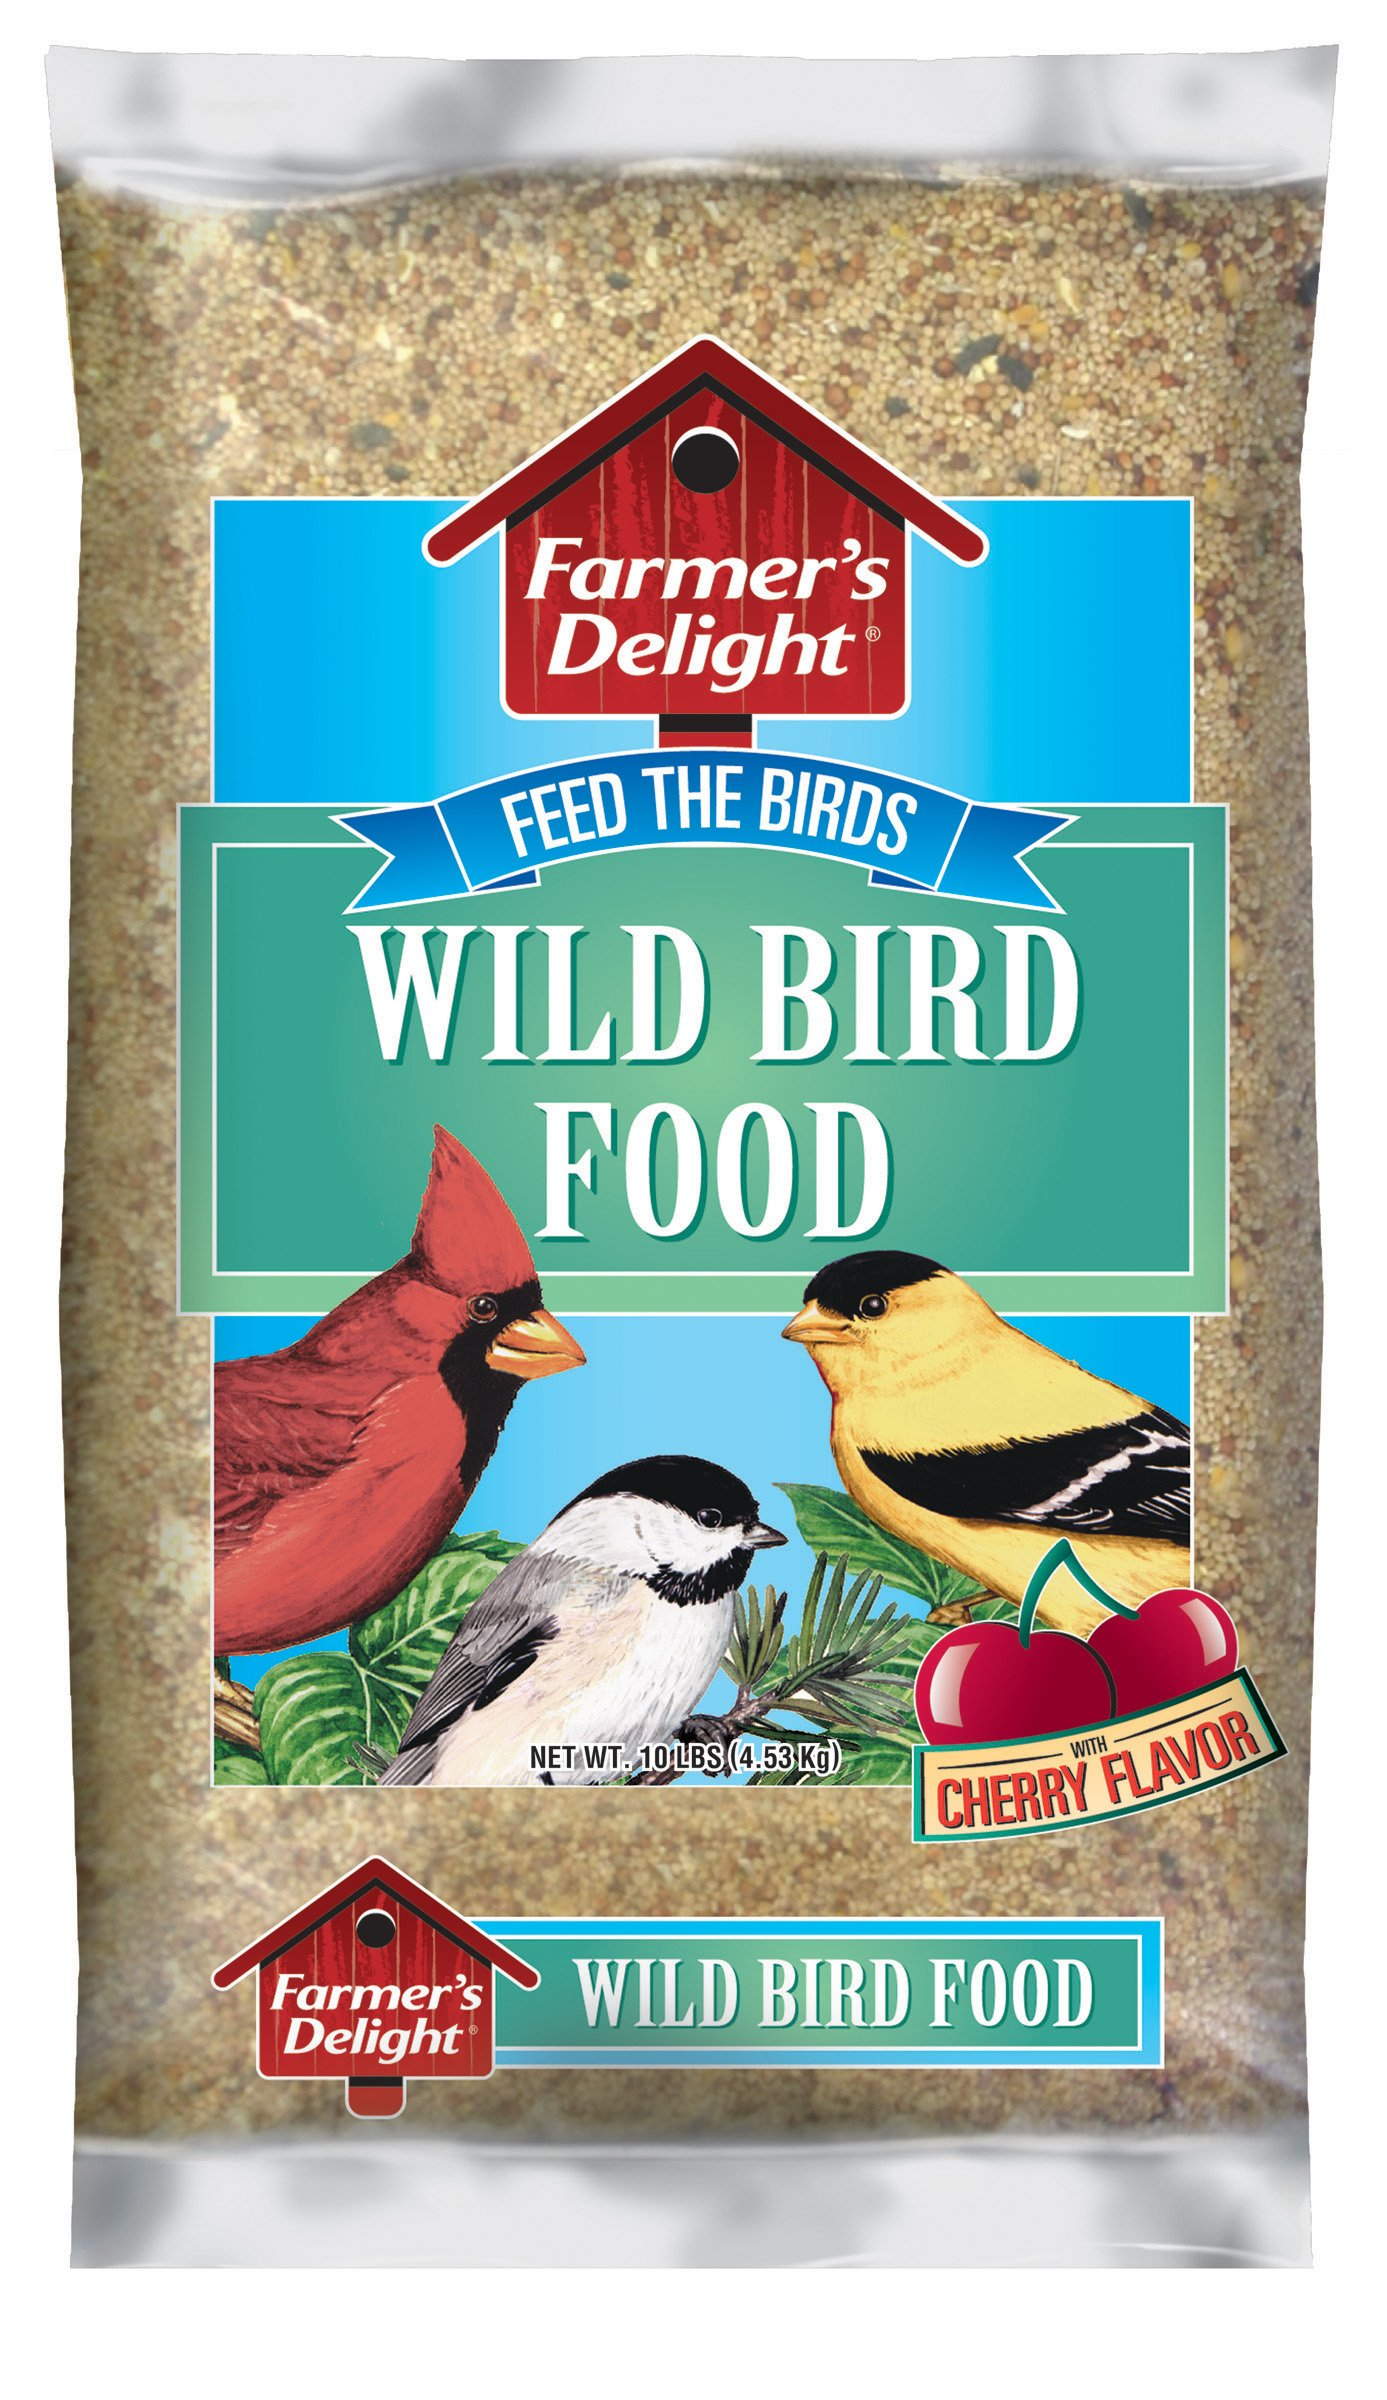 Wagner's 53002 Farmer's Delight Wild Bird Food, With Cherry Flavor, 10-Pound Bag by Wagner's